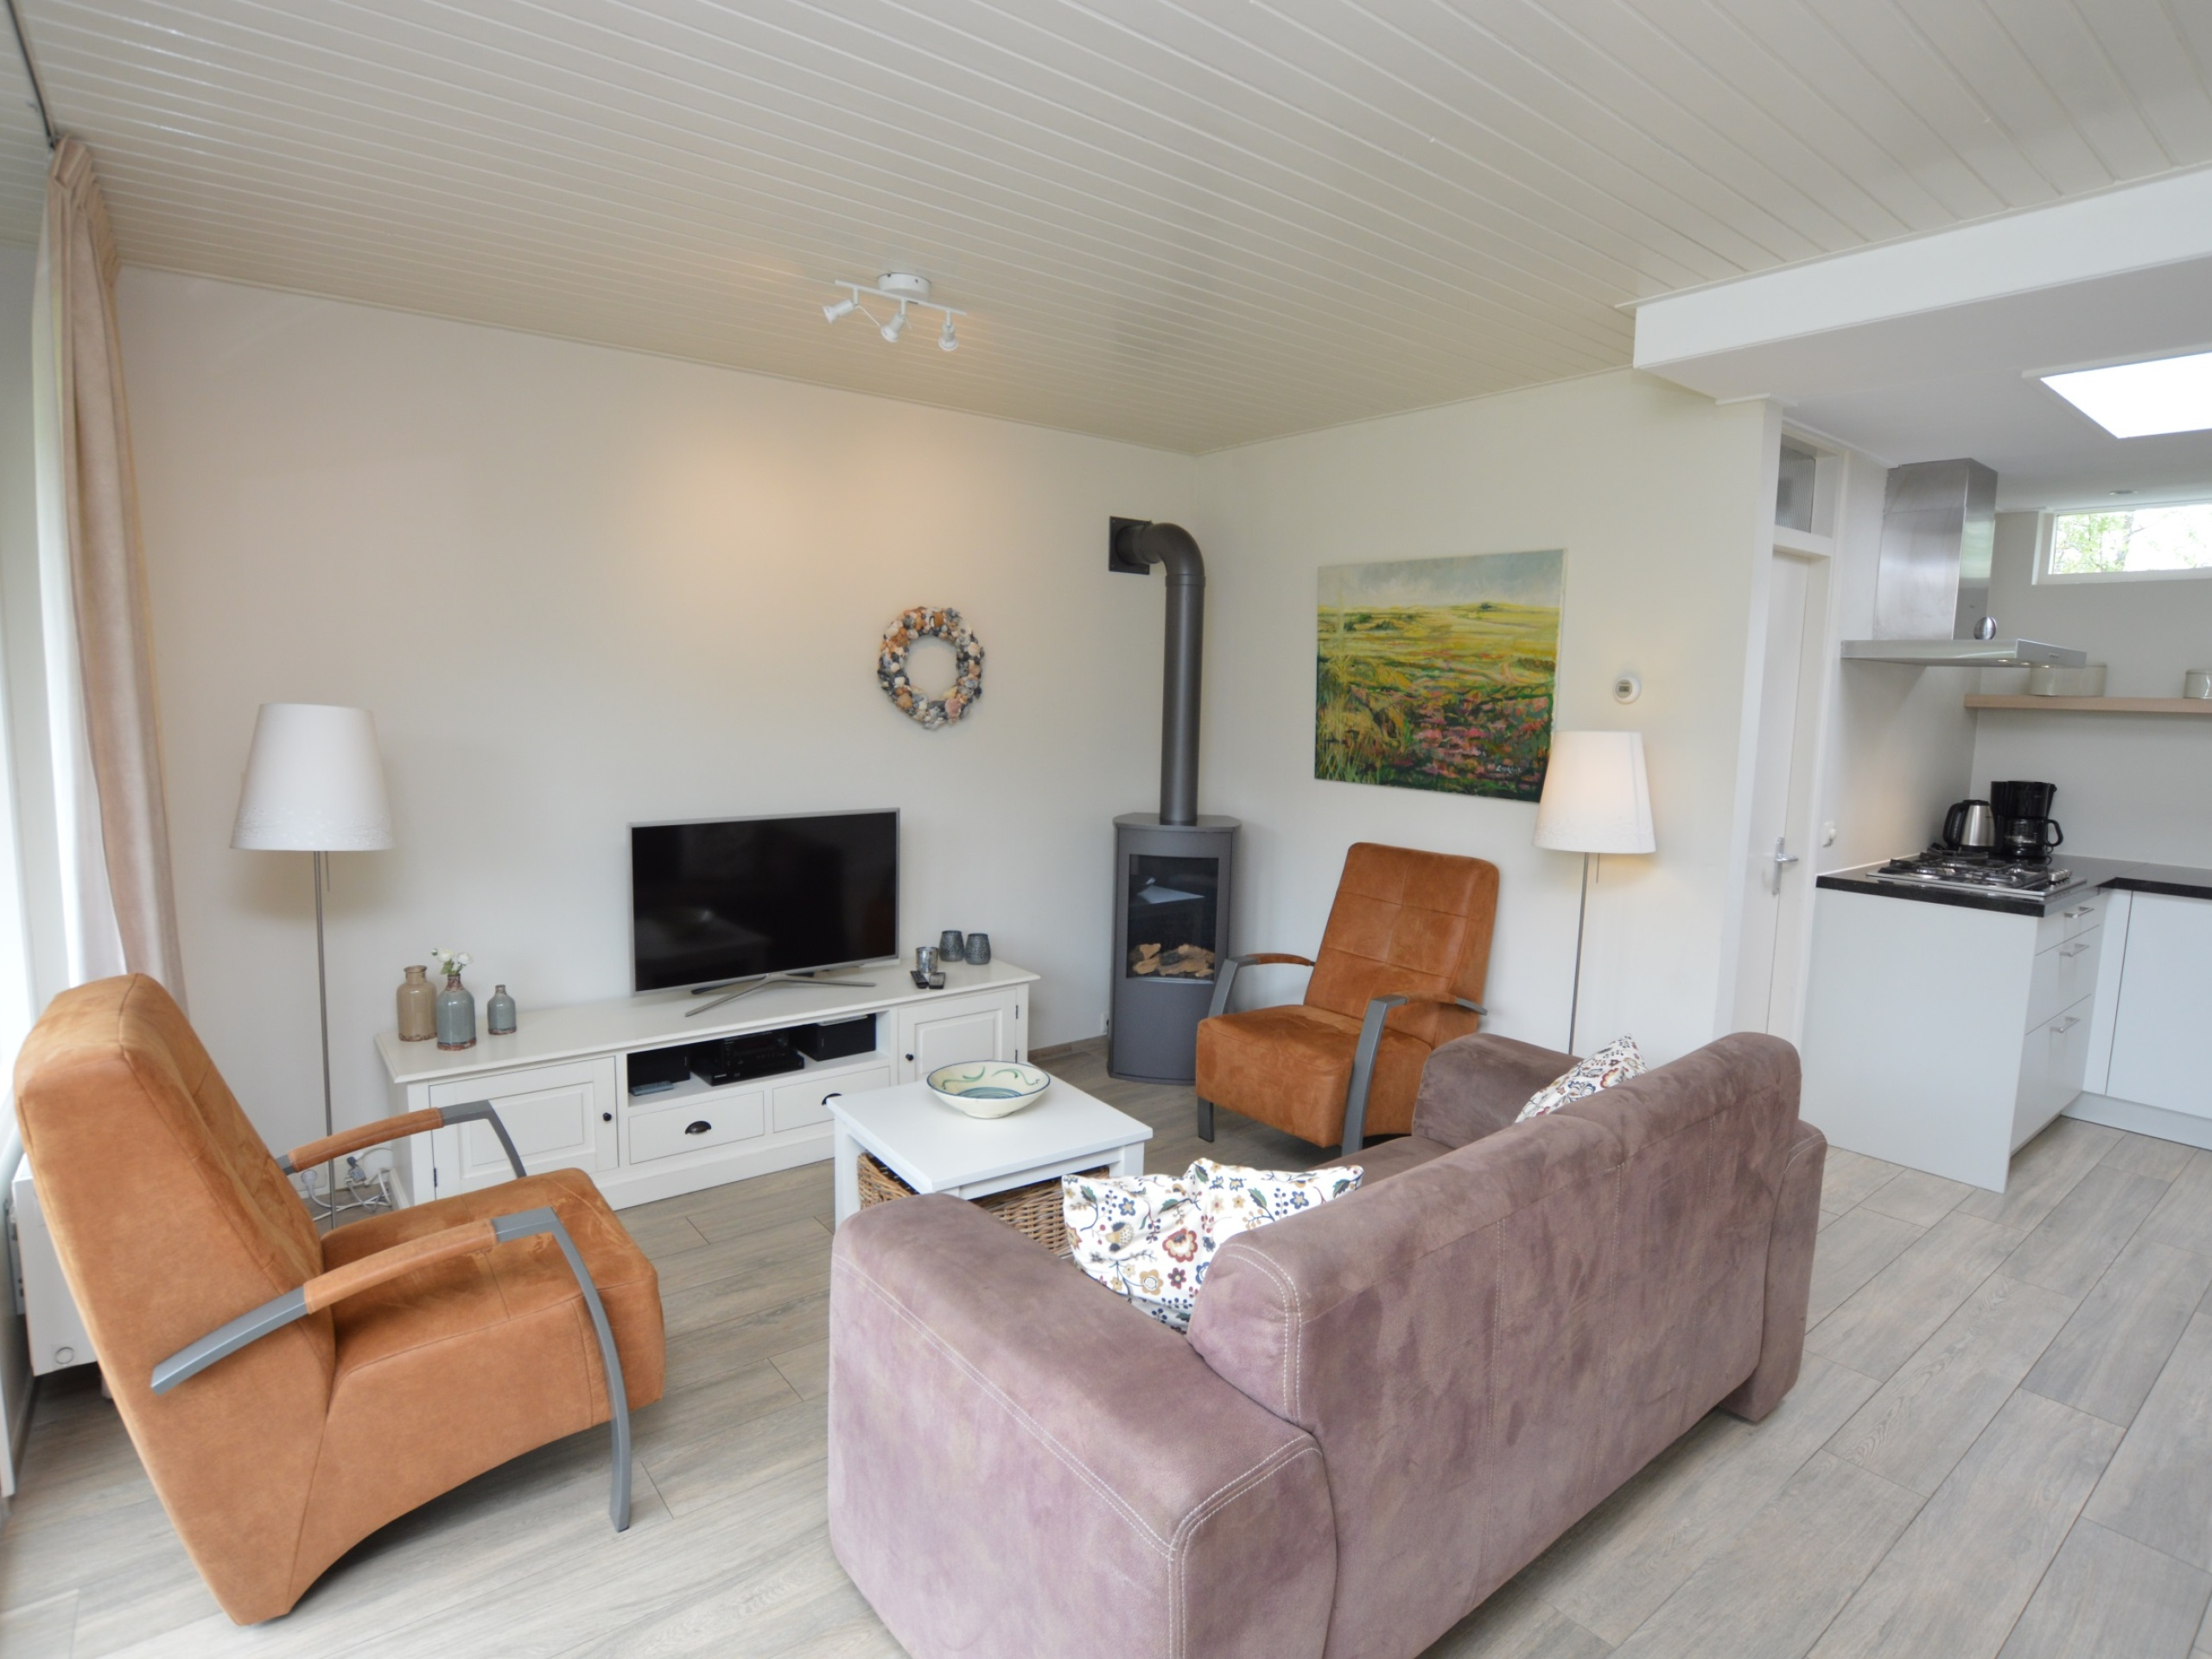 Detached spacious holiday home with lovely garden by the forest